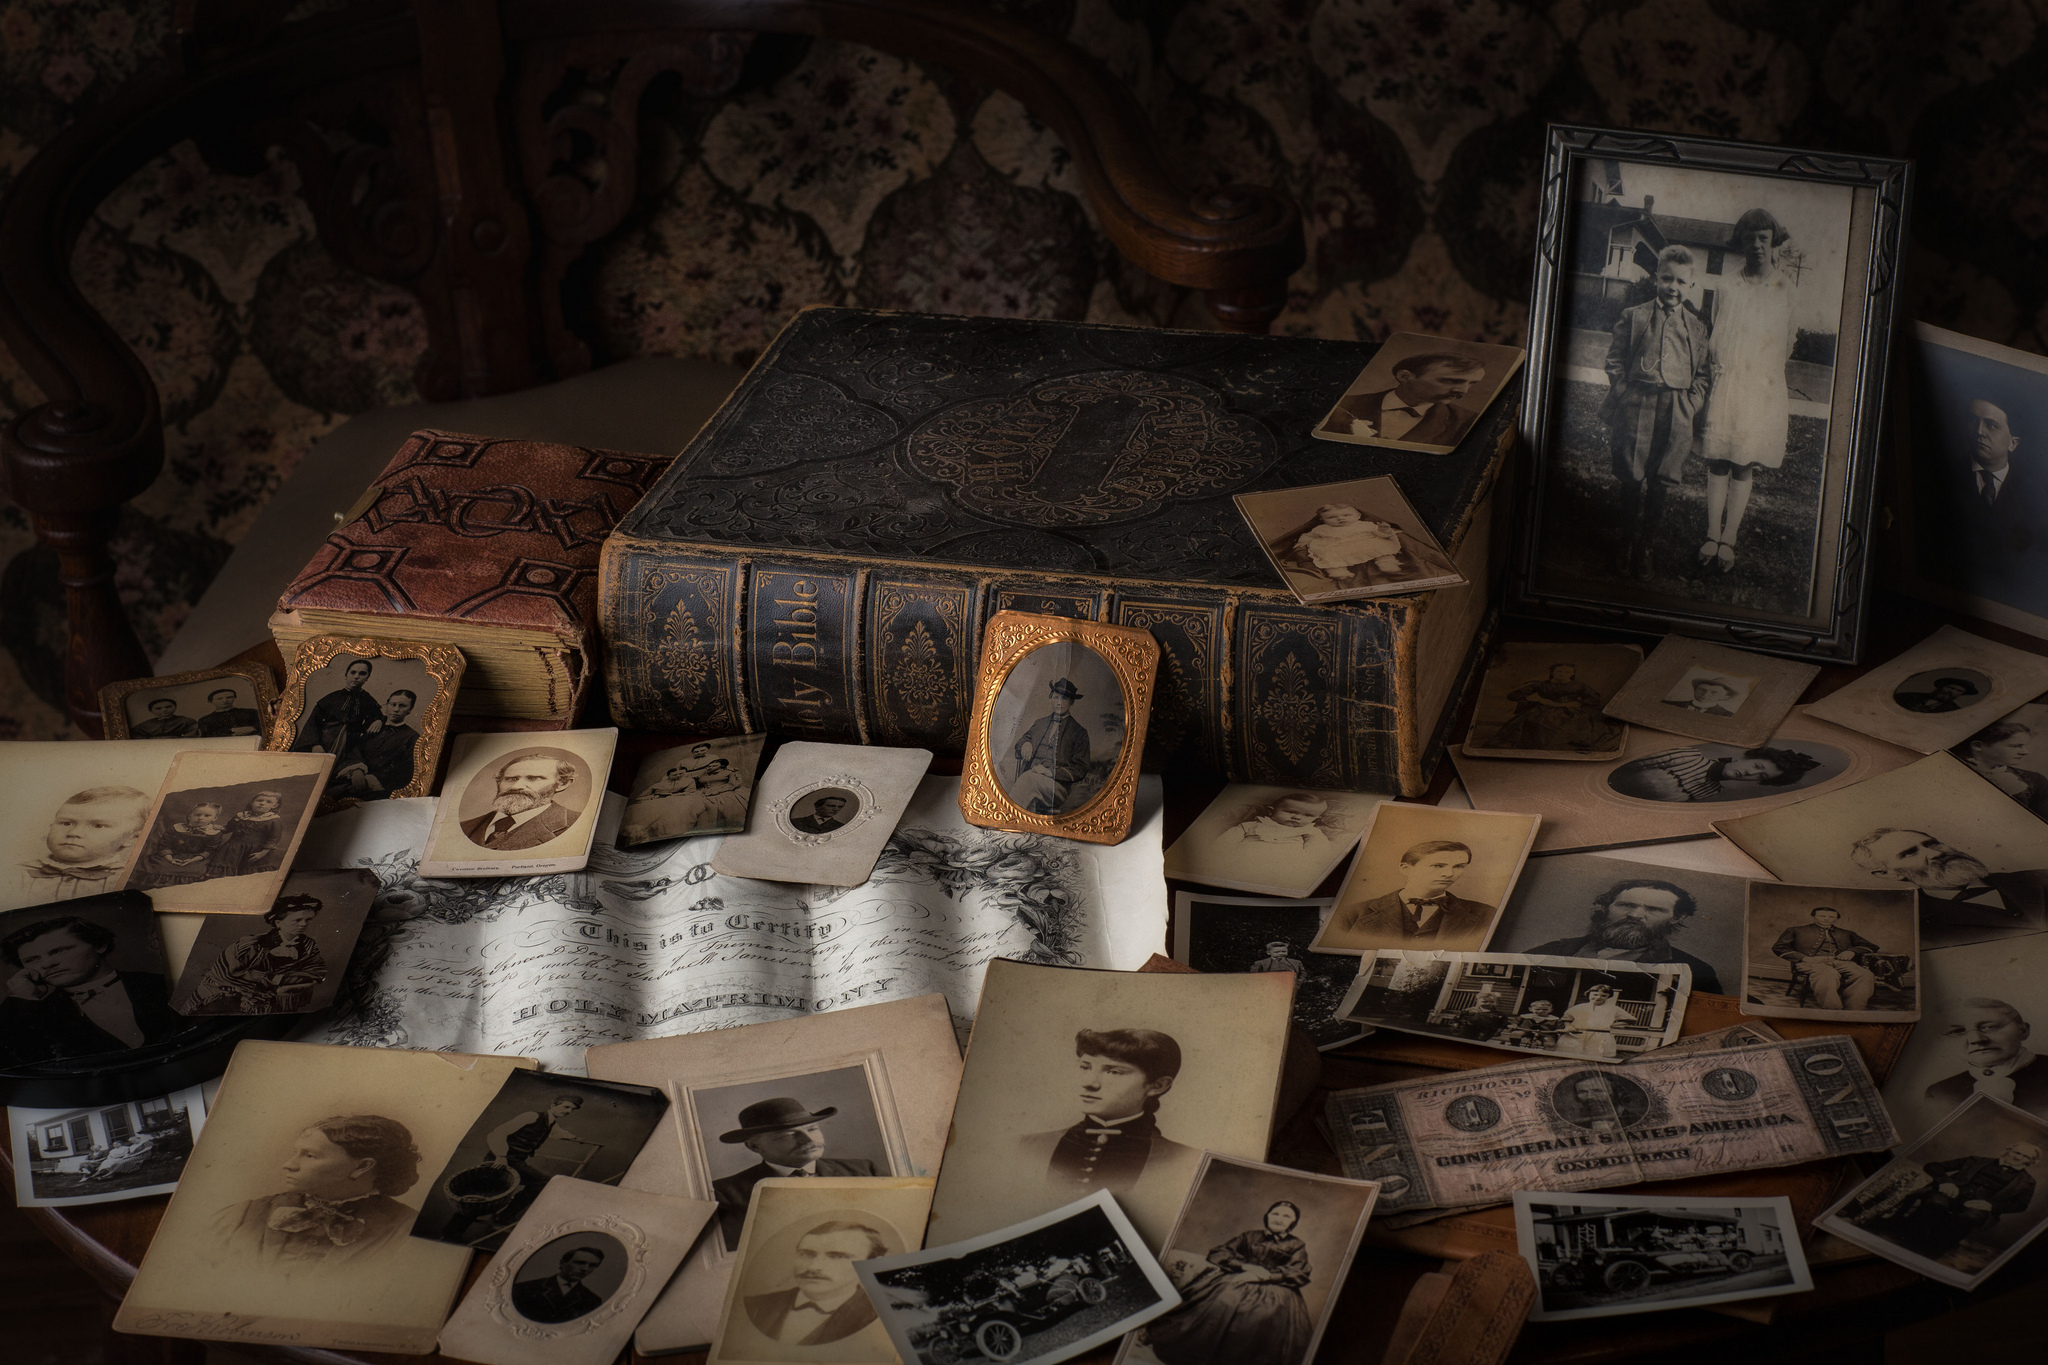 An array of old photographs and vintage books